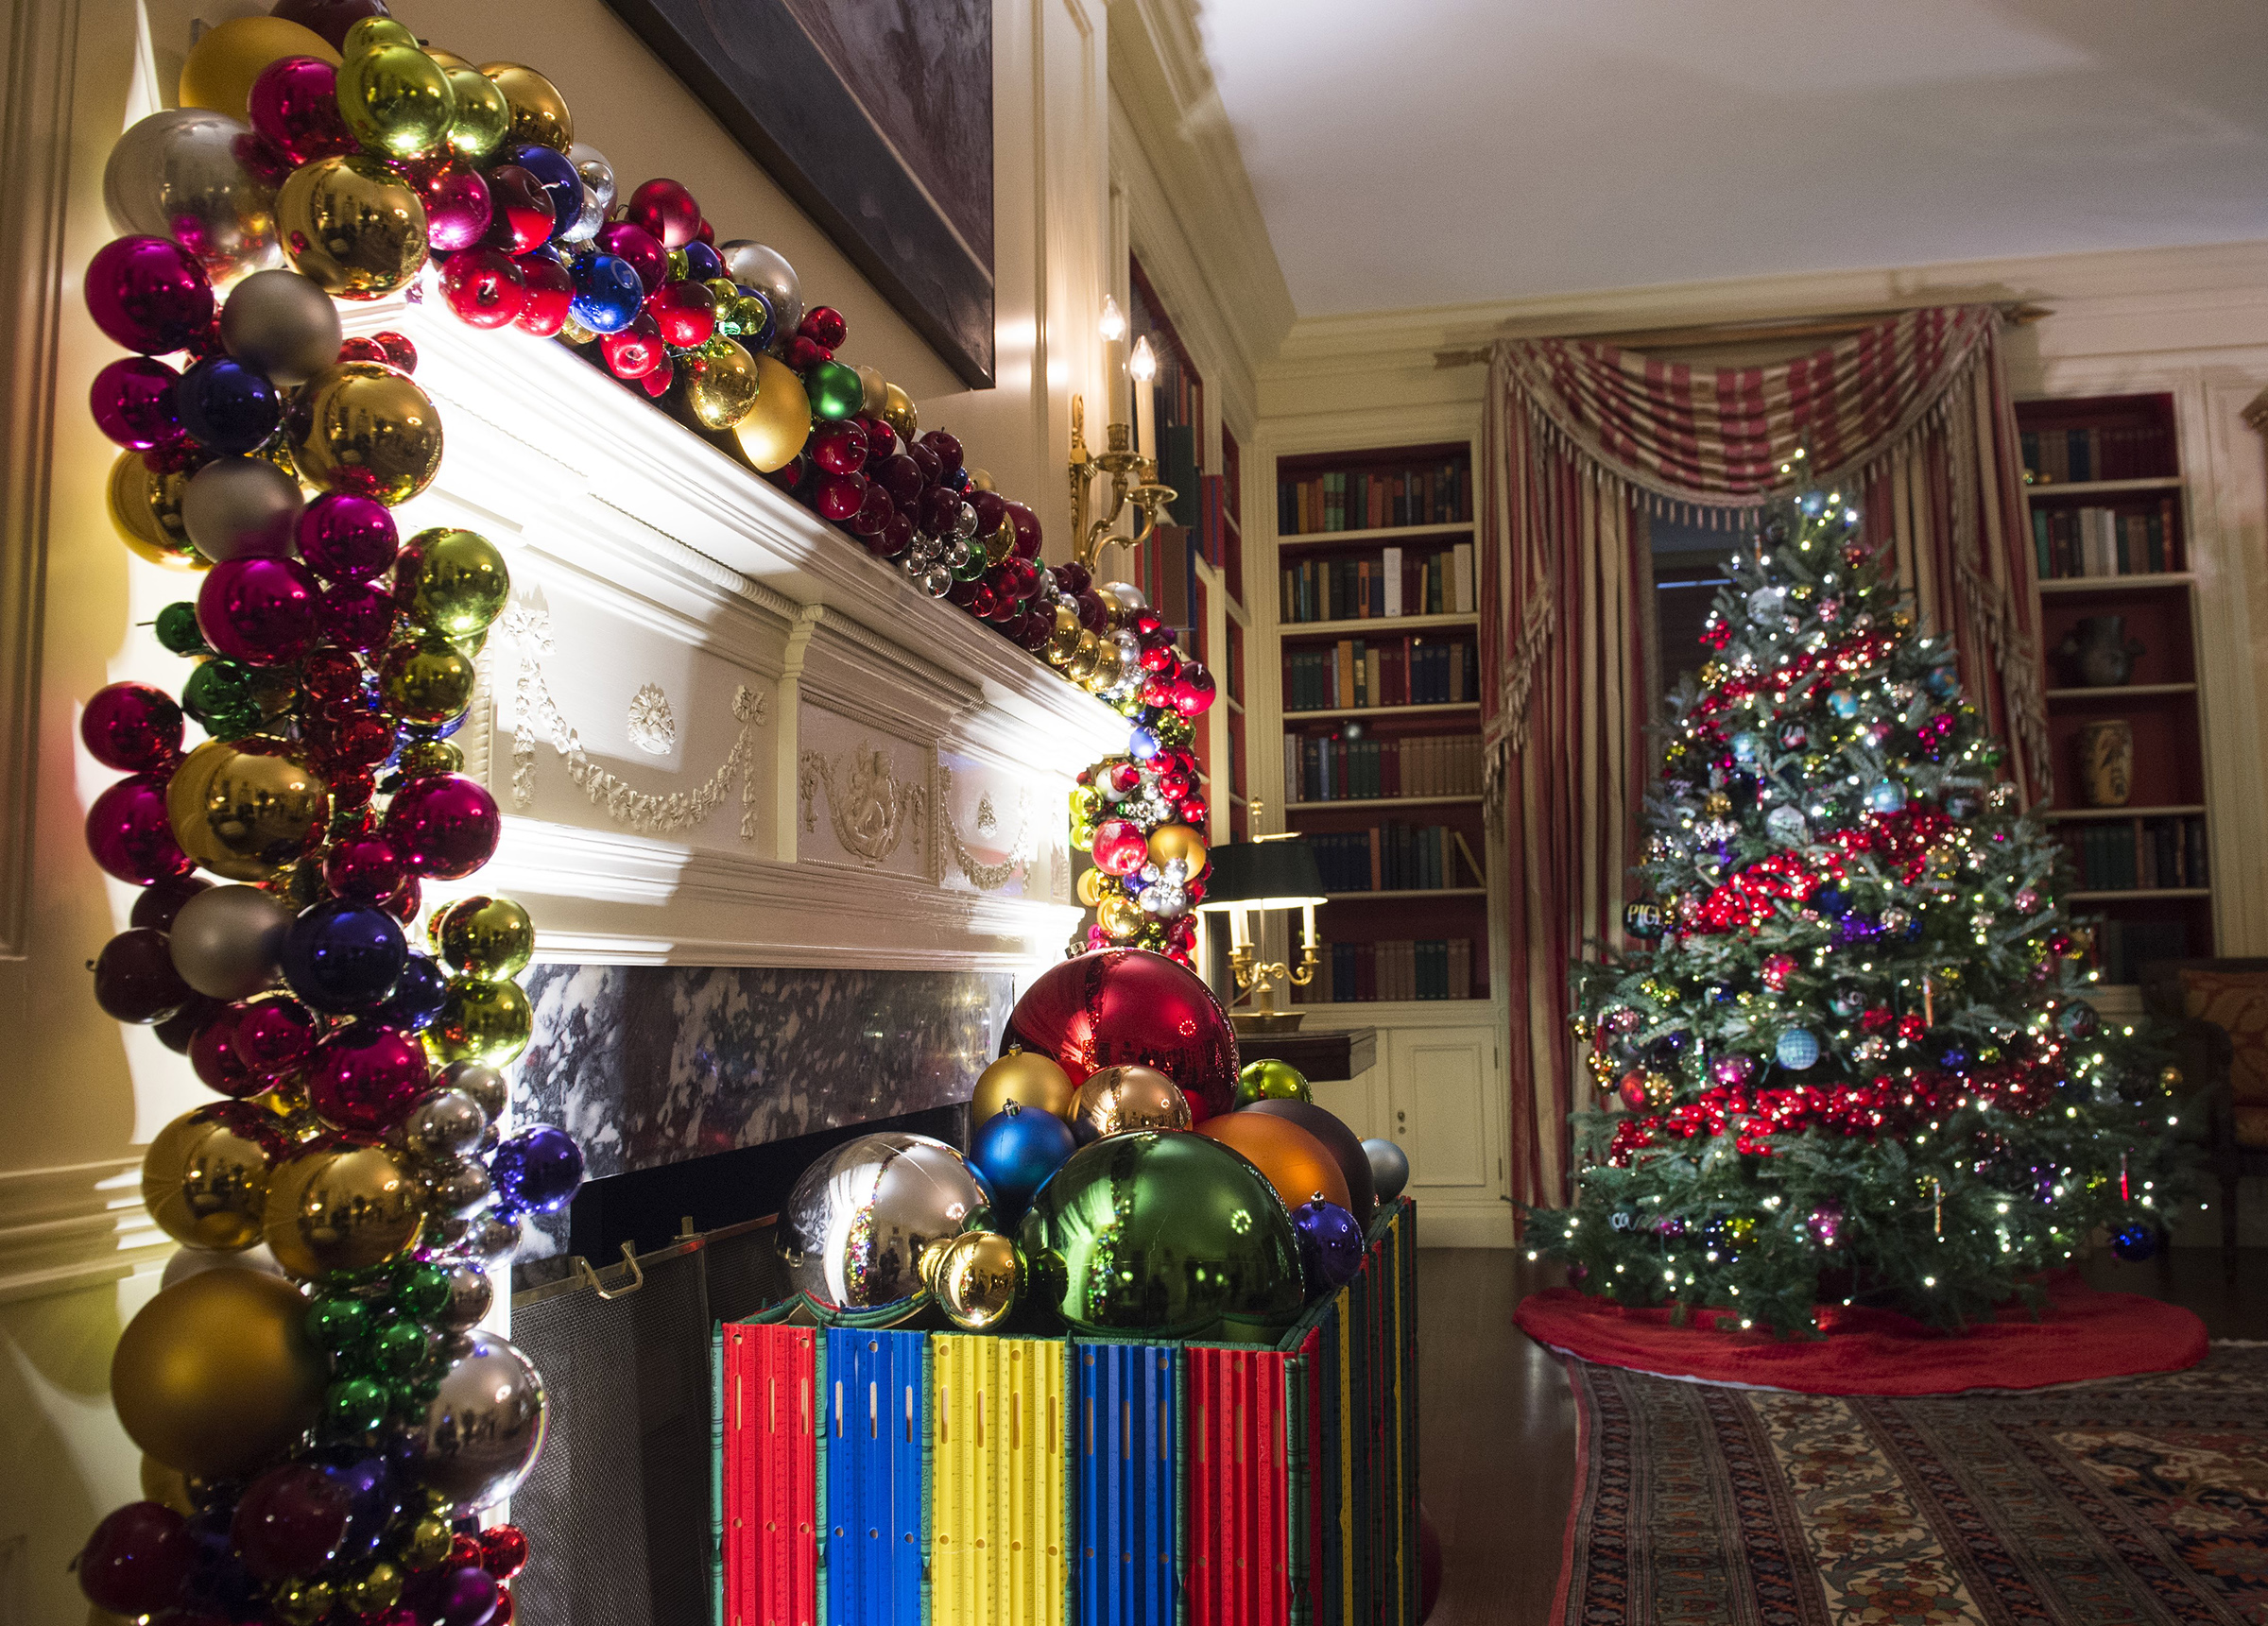 Christmas trees and holiday decorations in the theme of,  The Gift of the Holidays,  are seen in the Library of the White House in Washington, D.c. on Nov. 29, 2016.